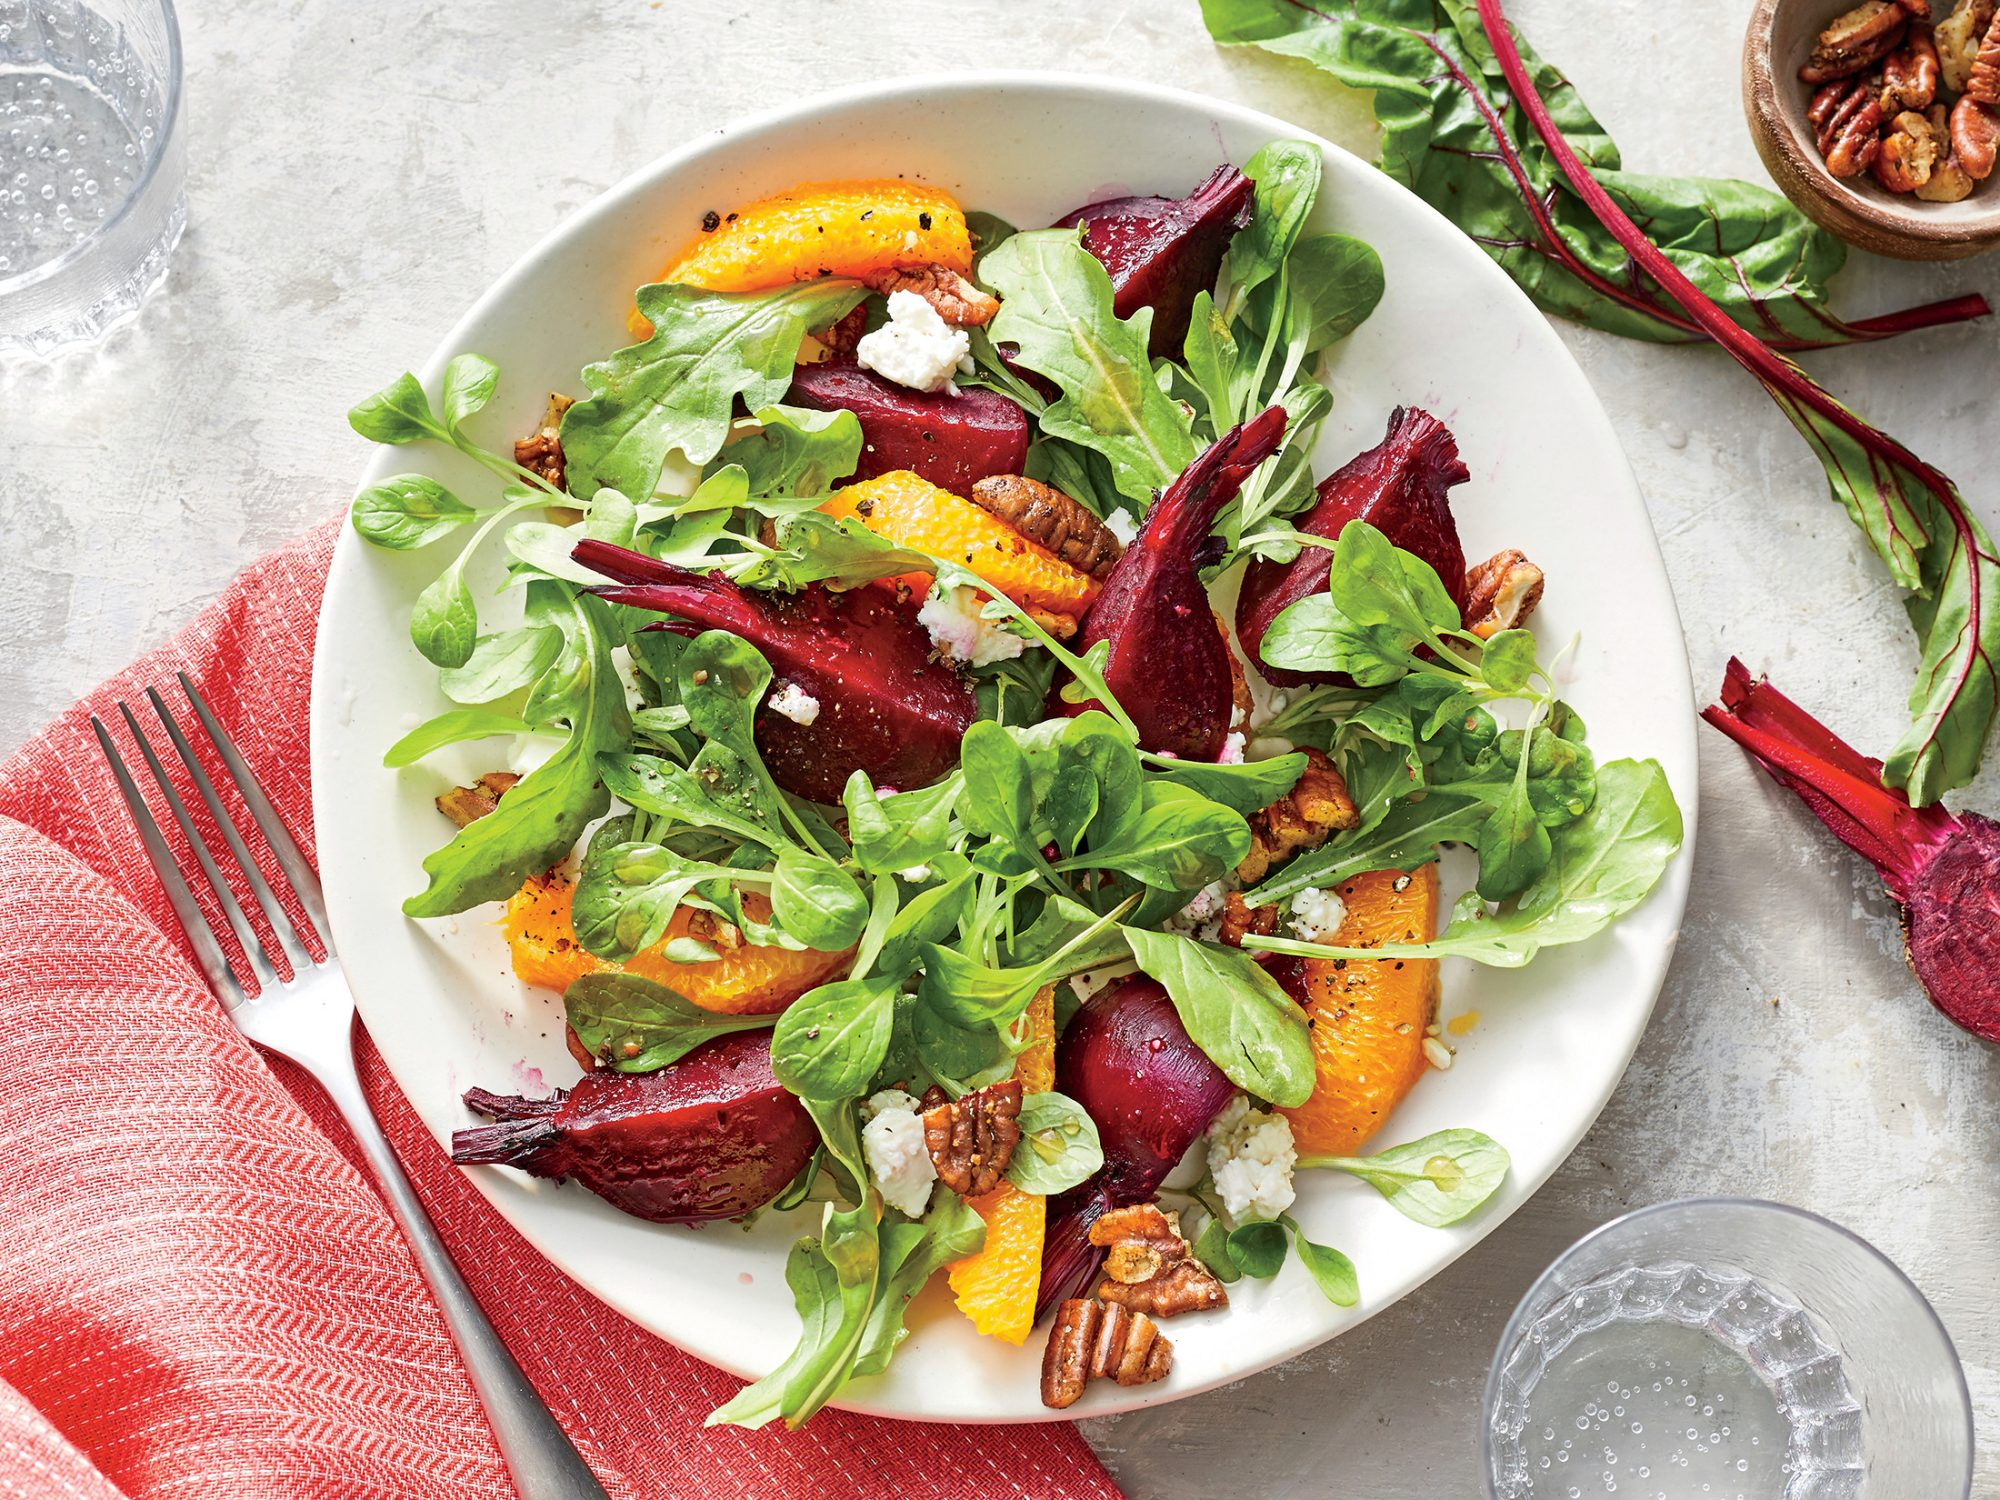 sl-Beet-and-Orange Salad with Spiced Pecans